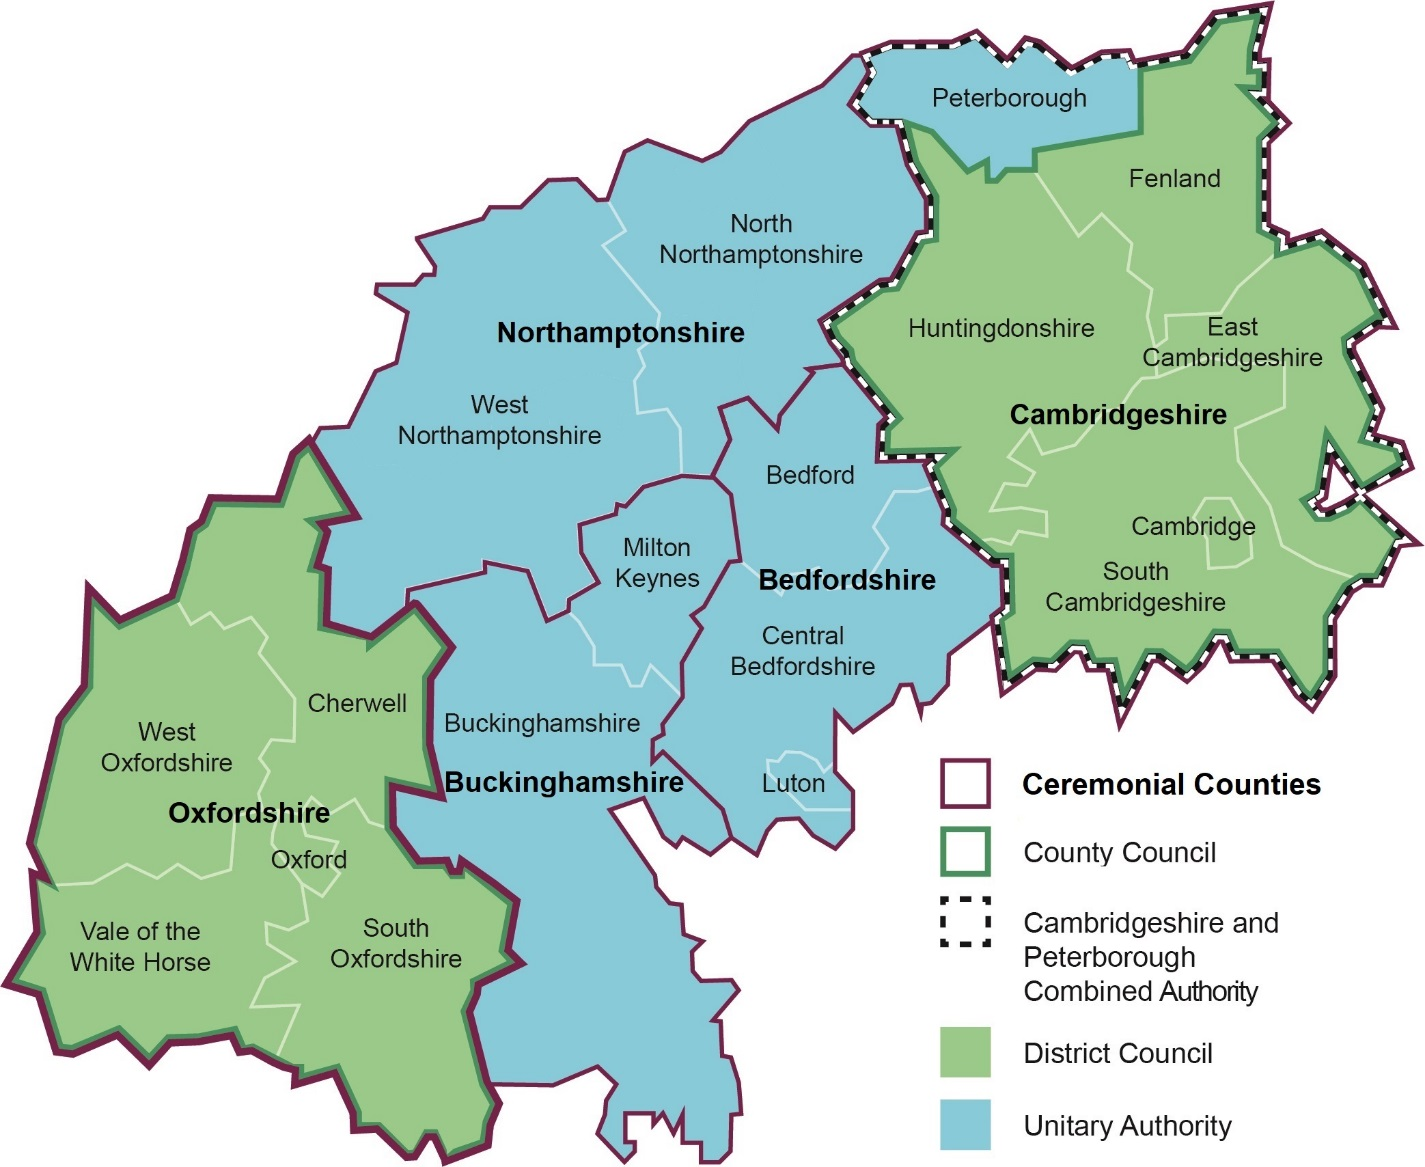 Map of the Oxford-Cambridge Arc area showing key administrative boundaries including: Ceremonial Counties; City Councils; Combined Authorities; District Councils; and Unitary Authority areas.